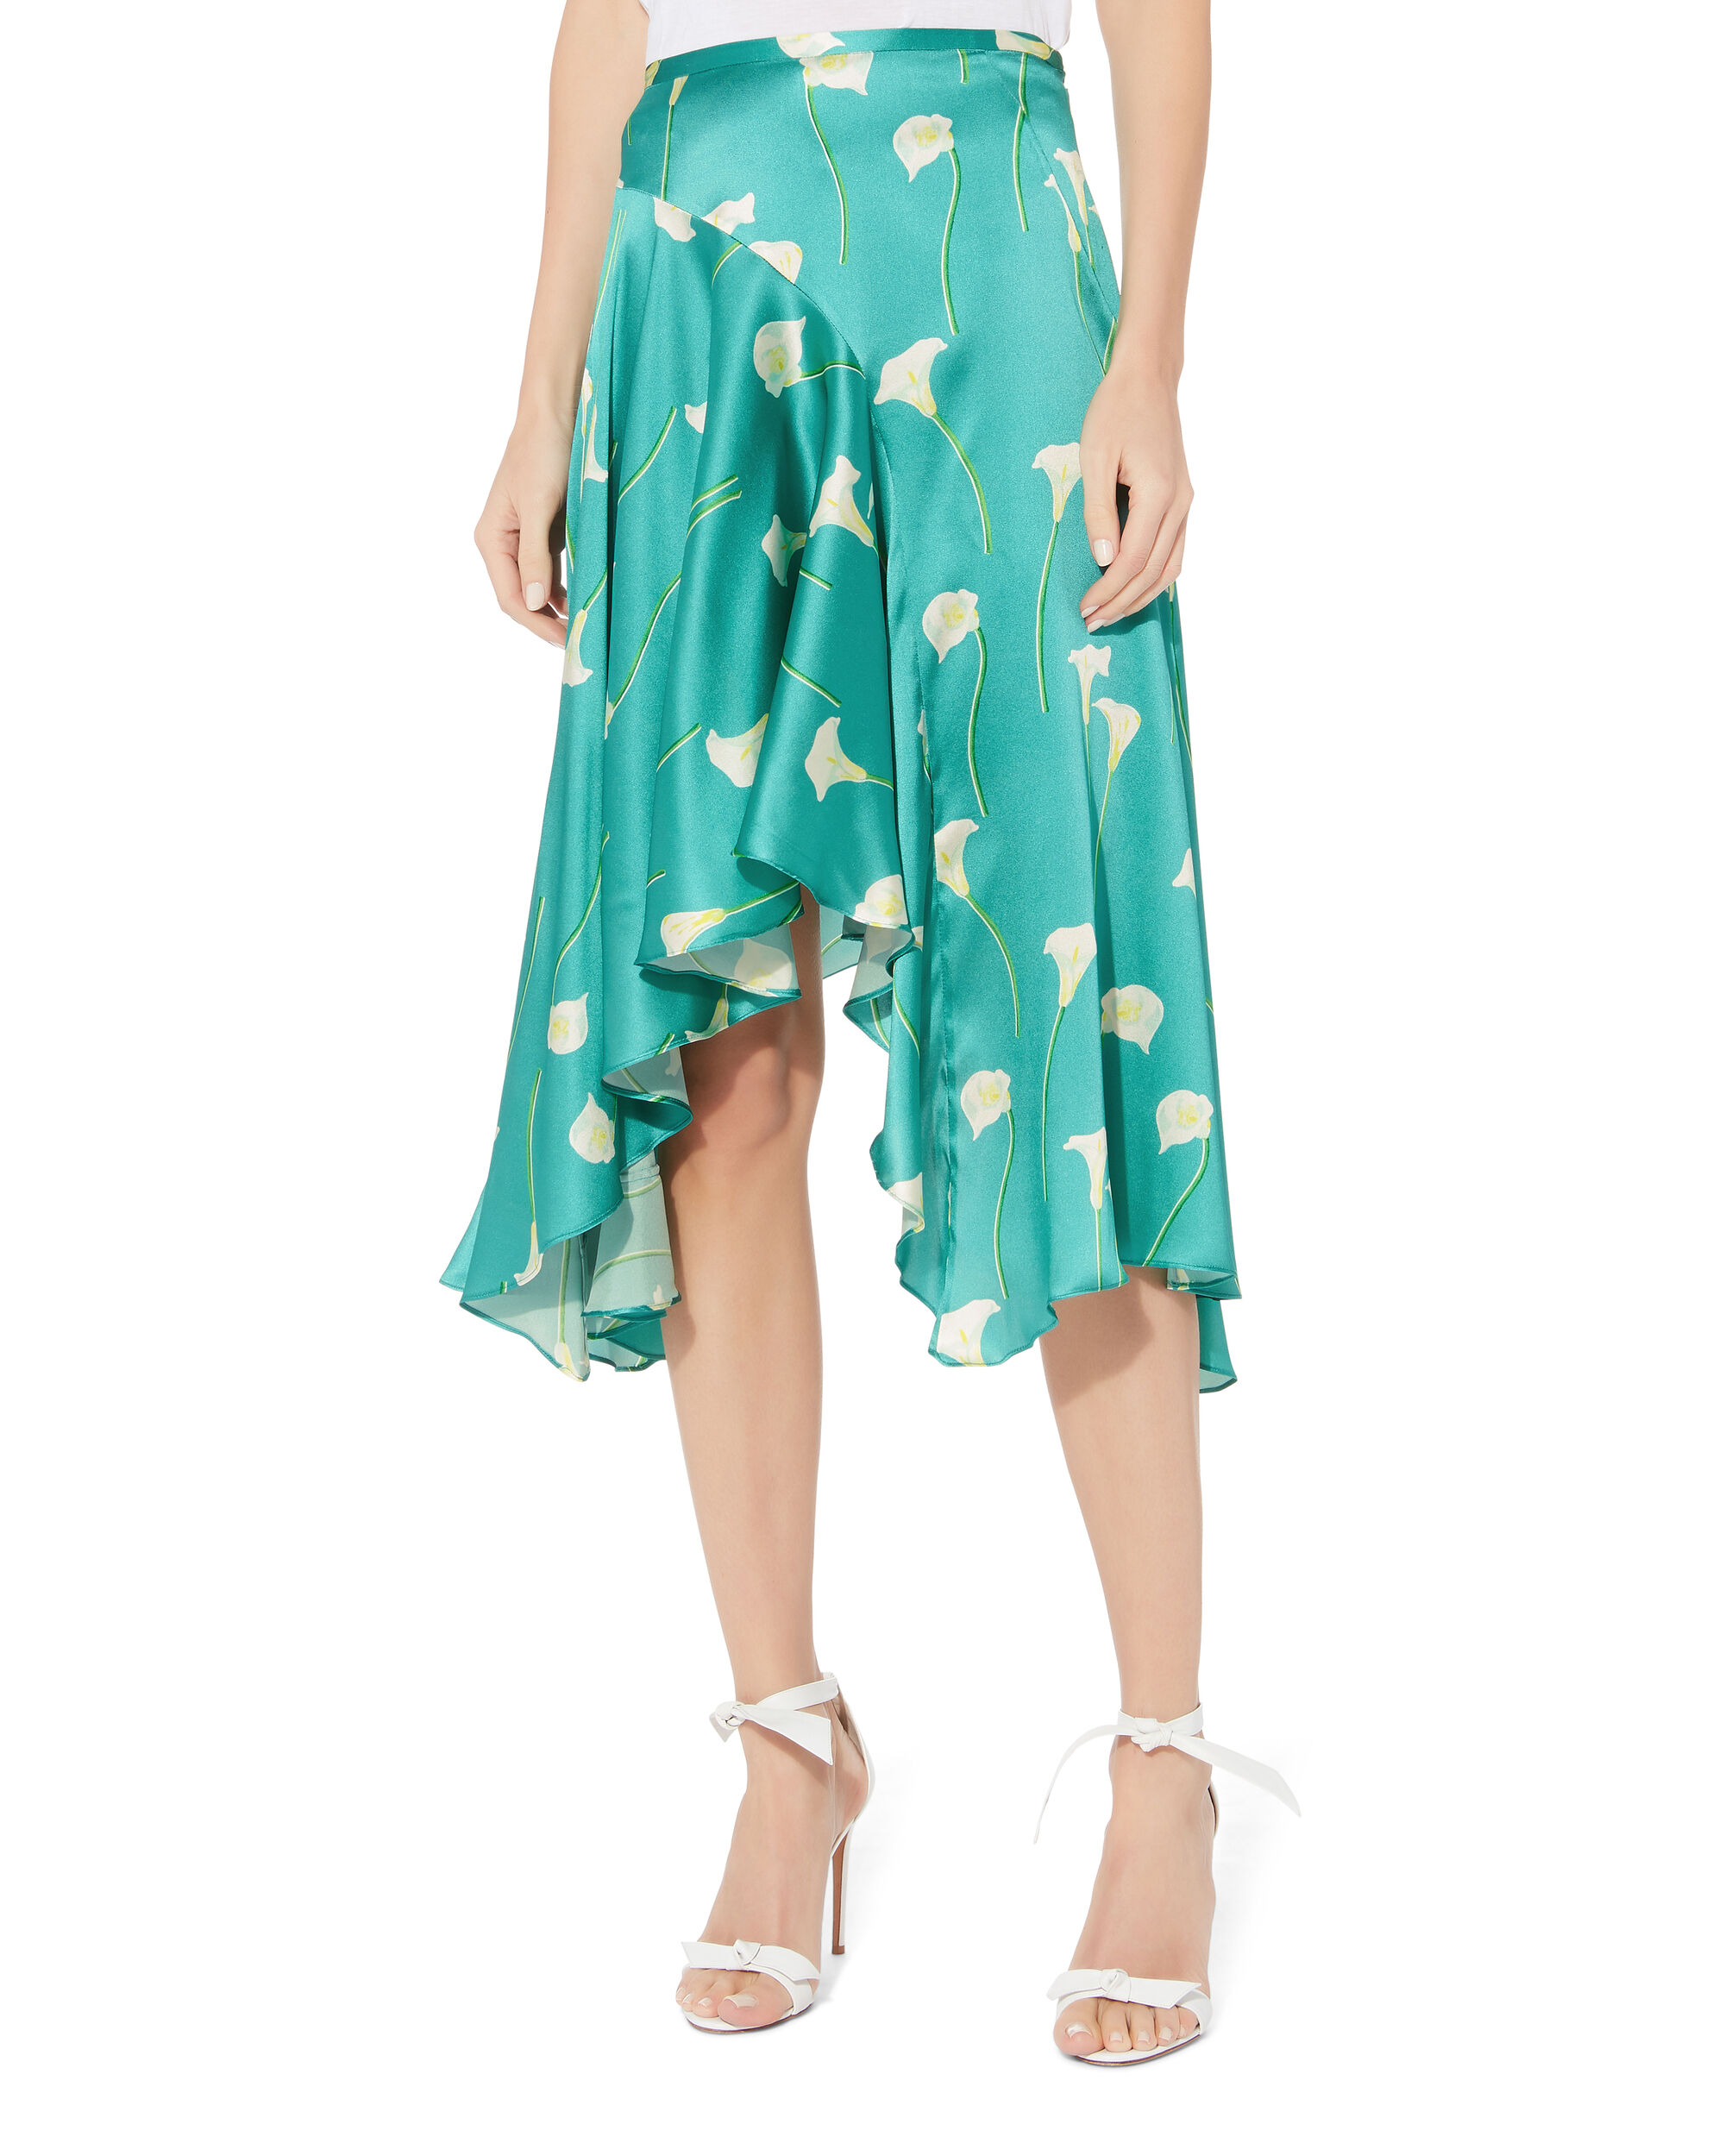 Calla Lilly Flounced Midi Skirt, TURQUOISE, hi-res